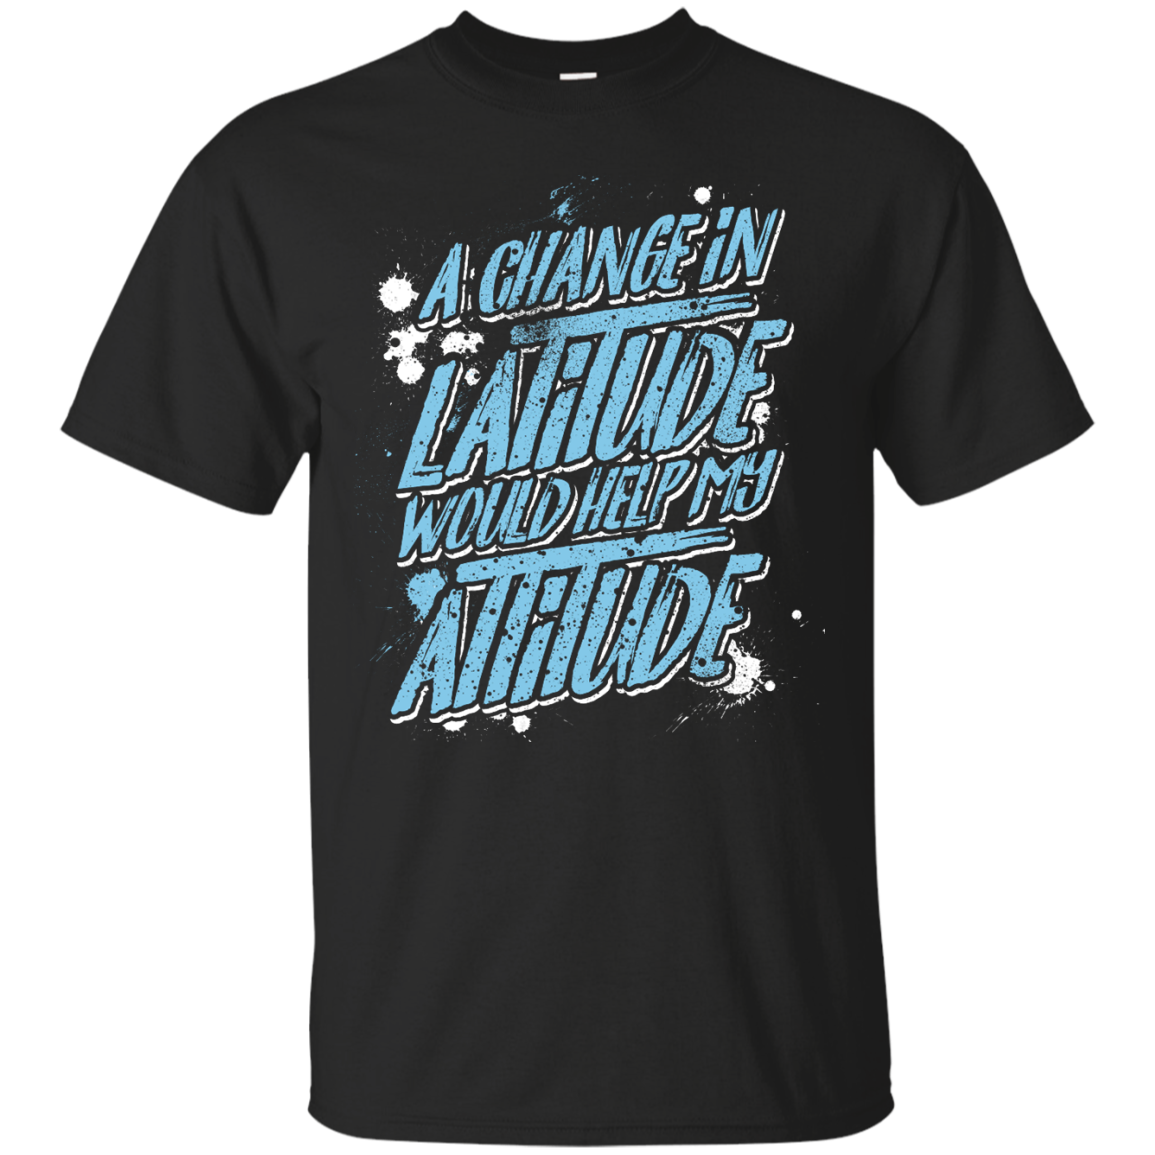 A Change in Latitude Would Help My Attitude T-Shirt Men